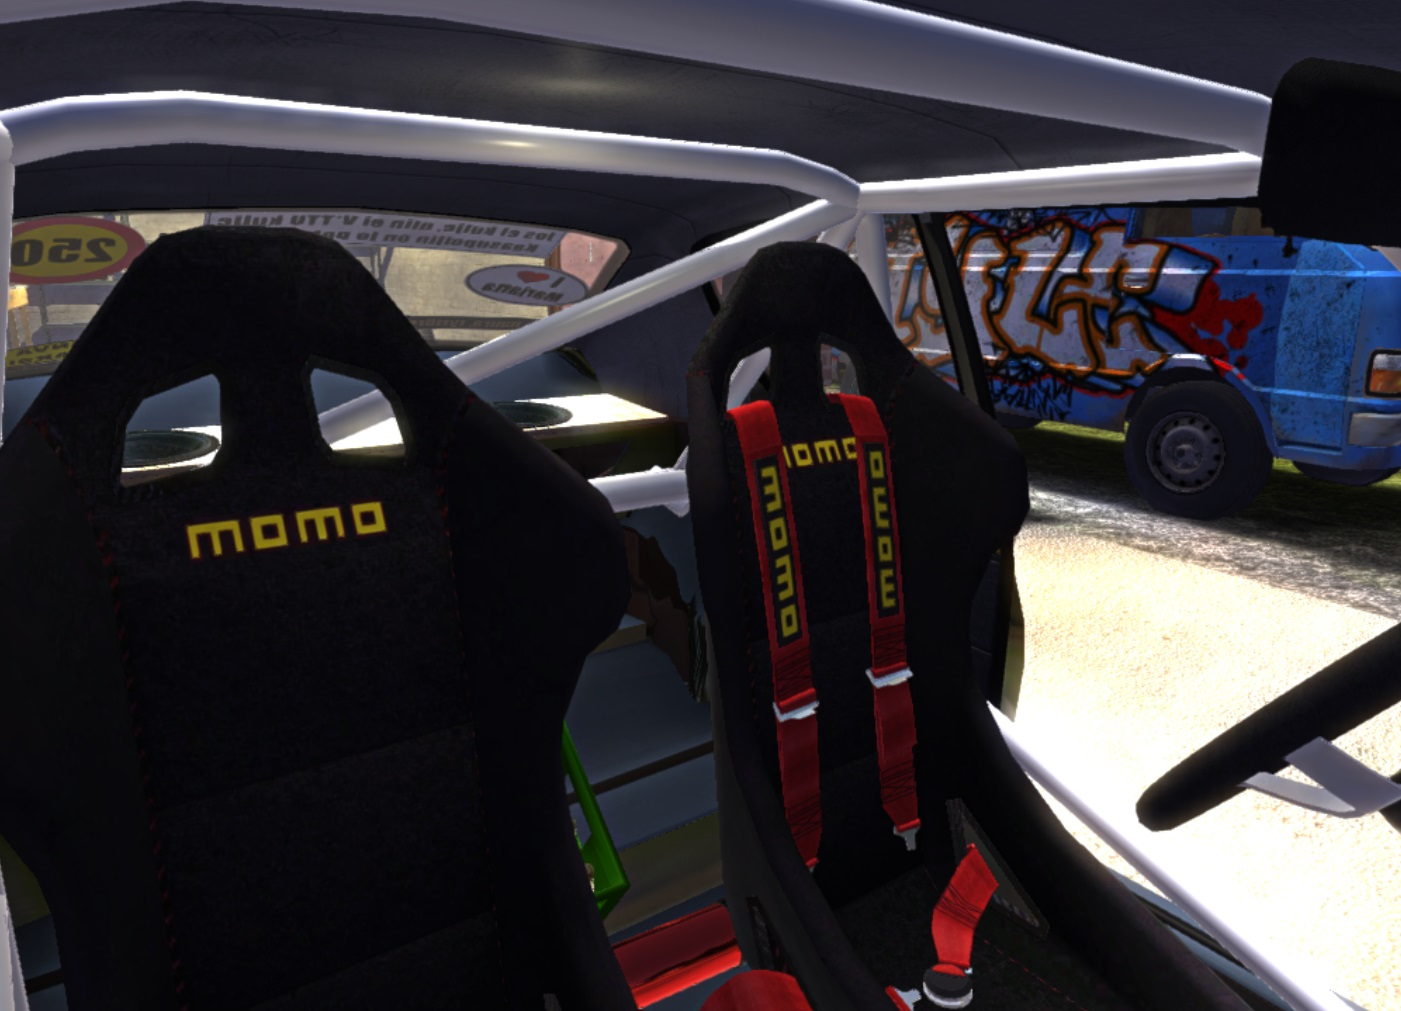 0e6d86cc25b MOMO -Seat and Harness. (MSC Textures) | RaceDepartment - Latest ...